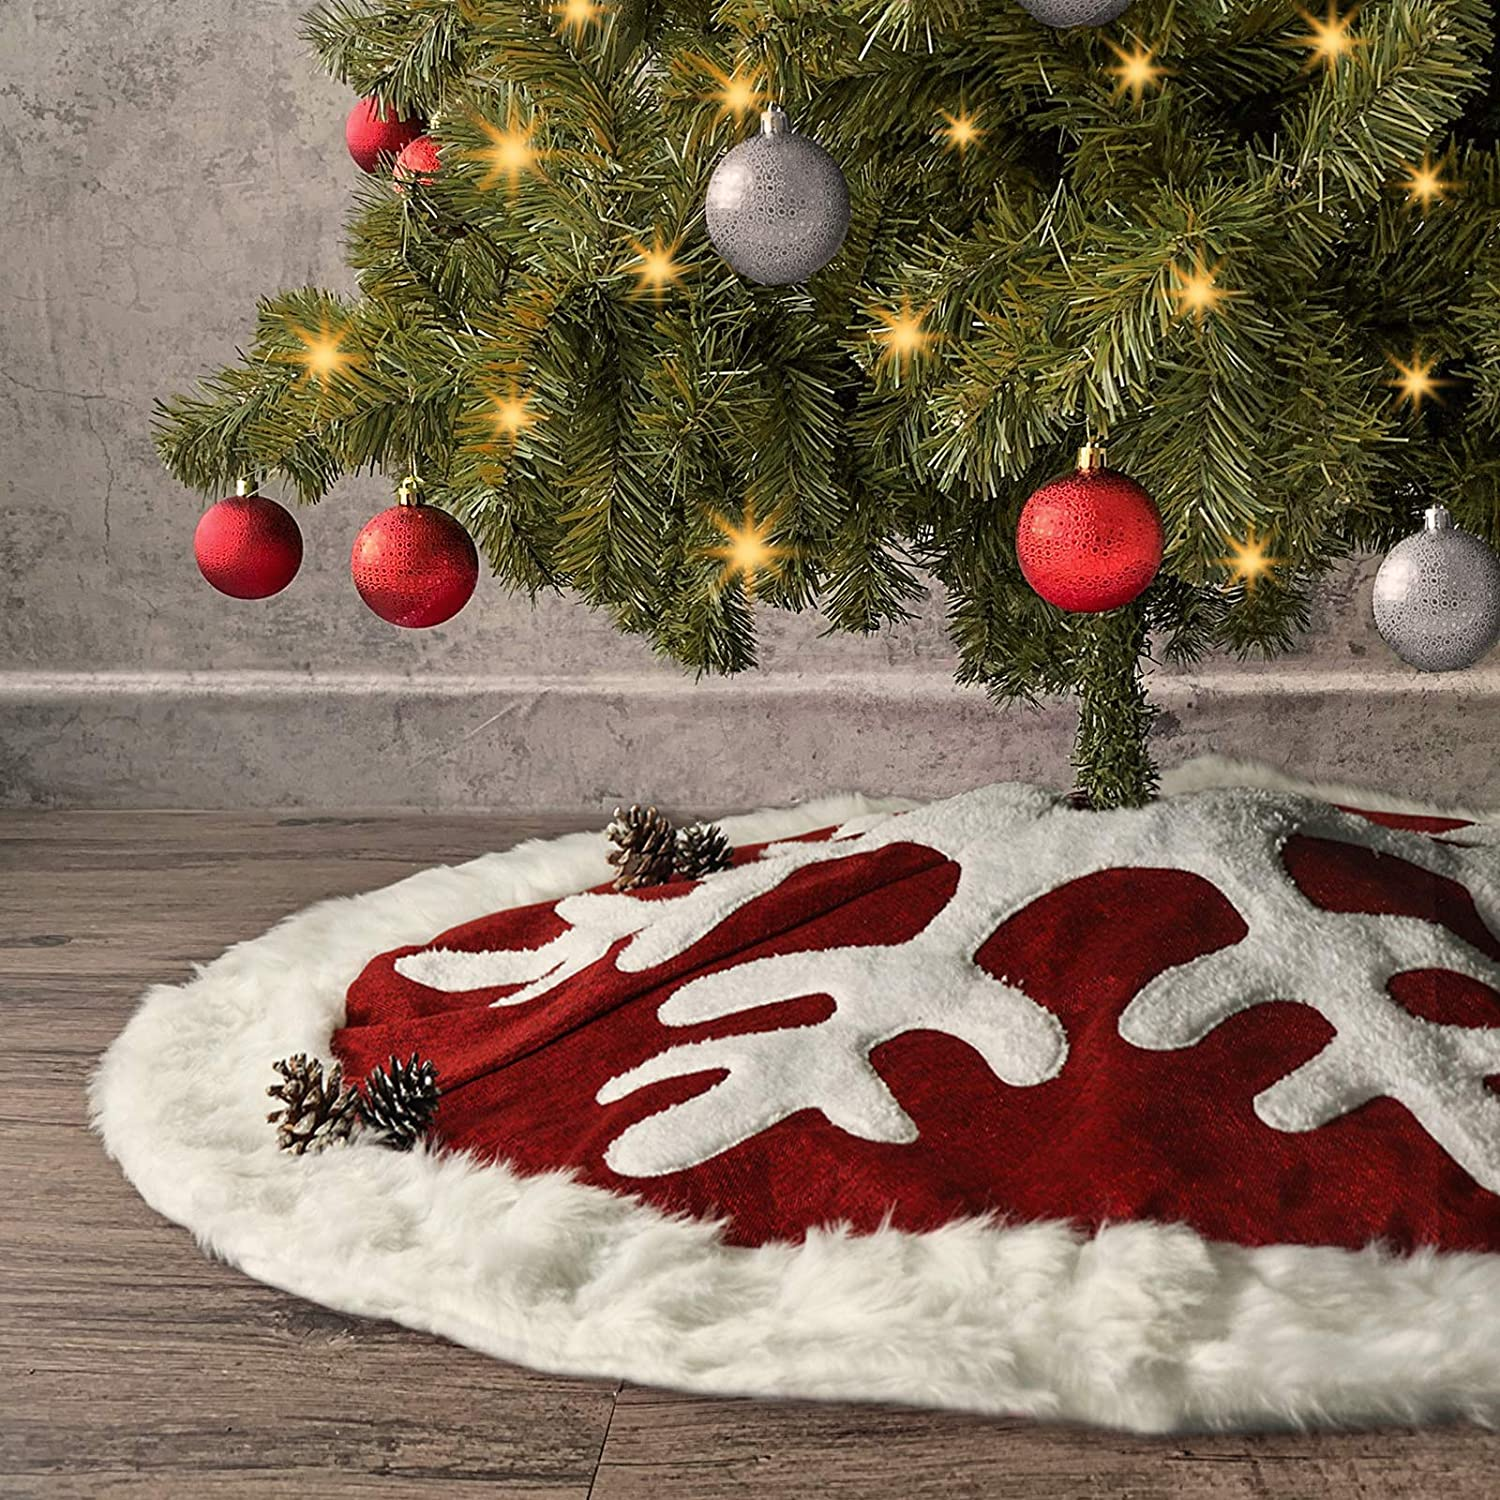 Ivenf Christmas Tree Skirt, 48 inches Luxury Red Burlap Snowflake with White Thick Plush Faux Fur Trim Skirt, Rustic Xmas Tree Holiday Decorations…